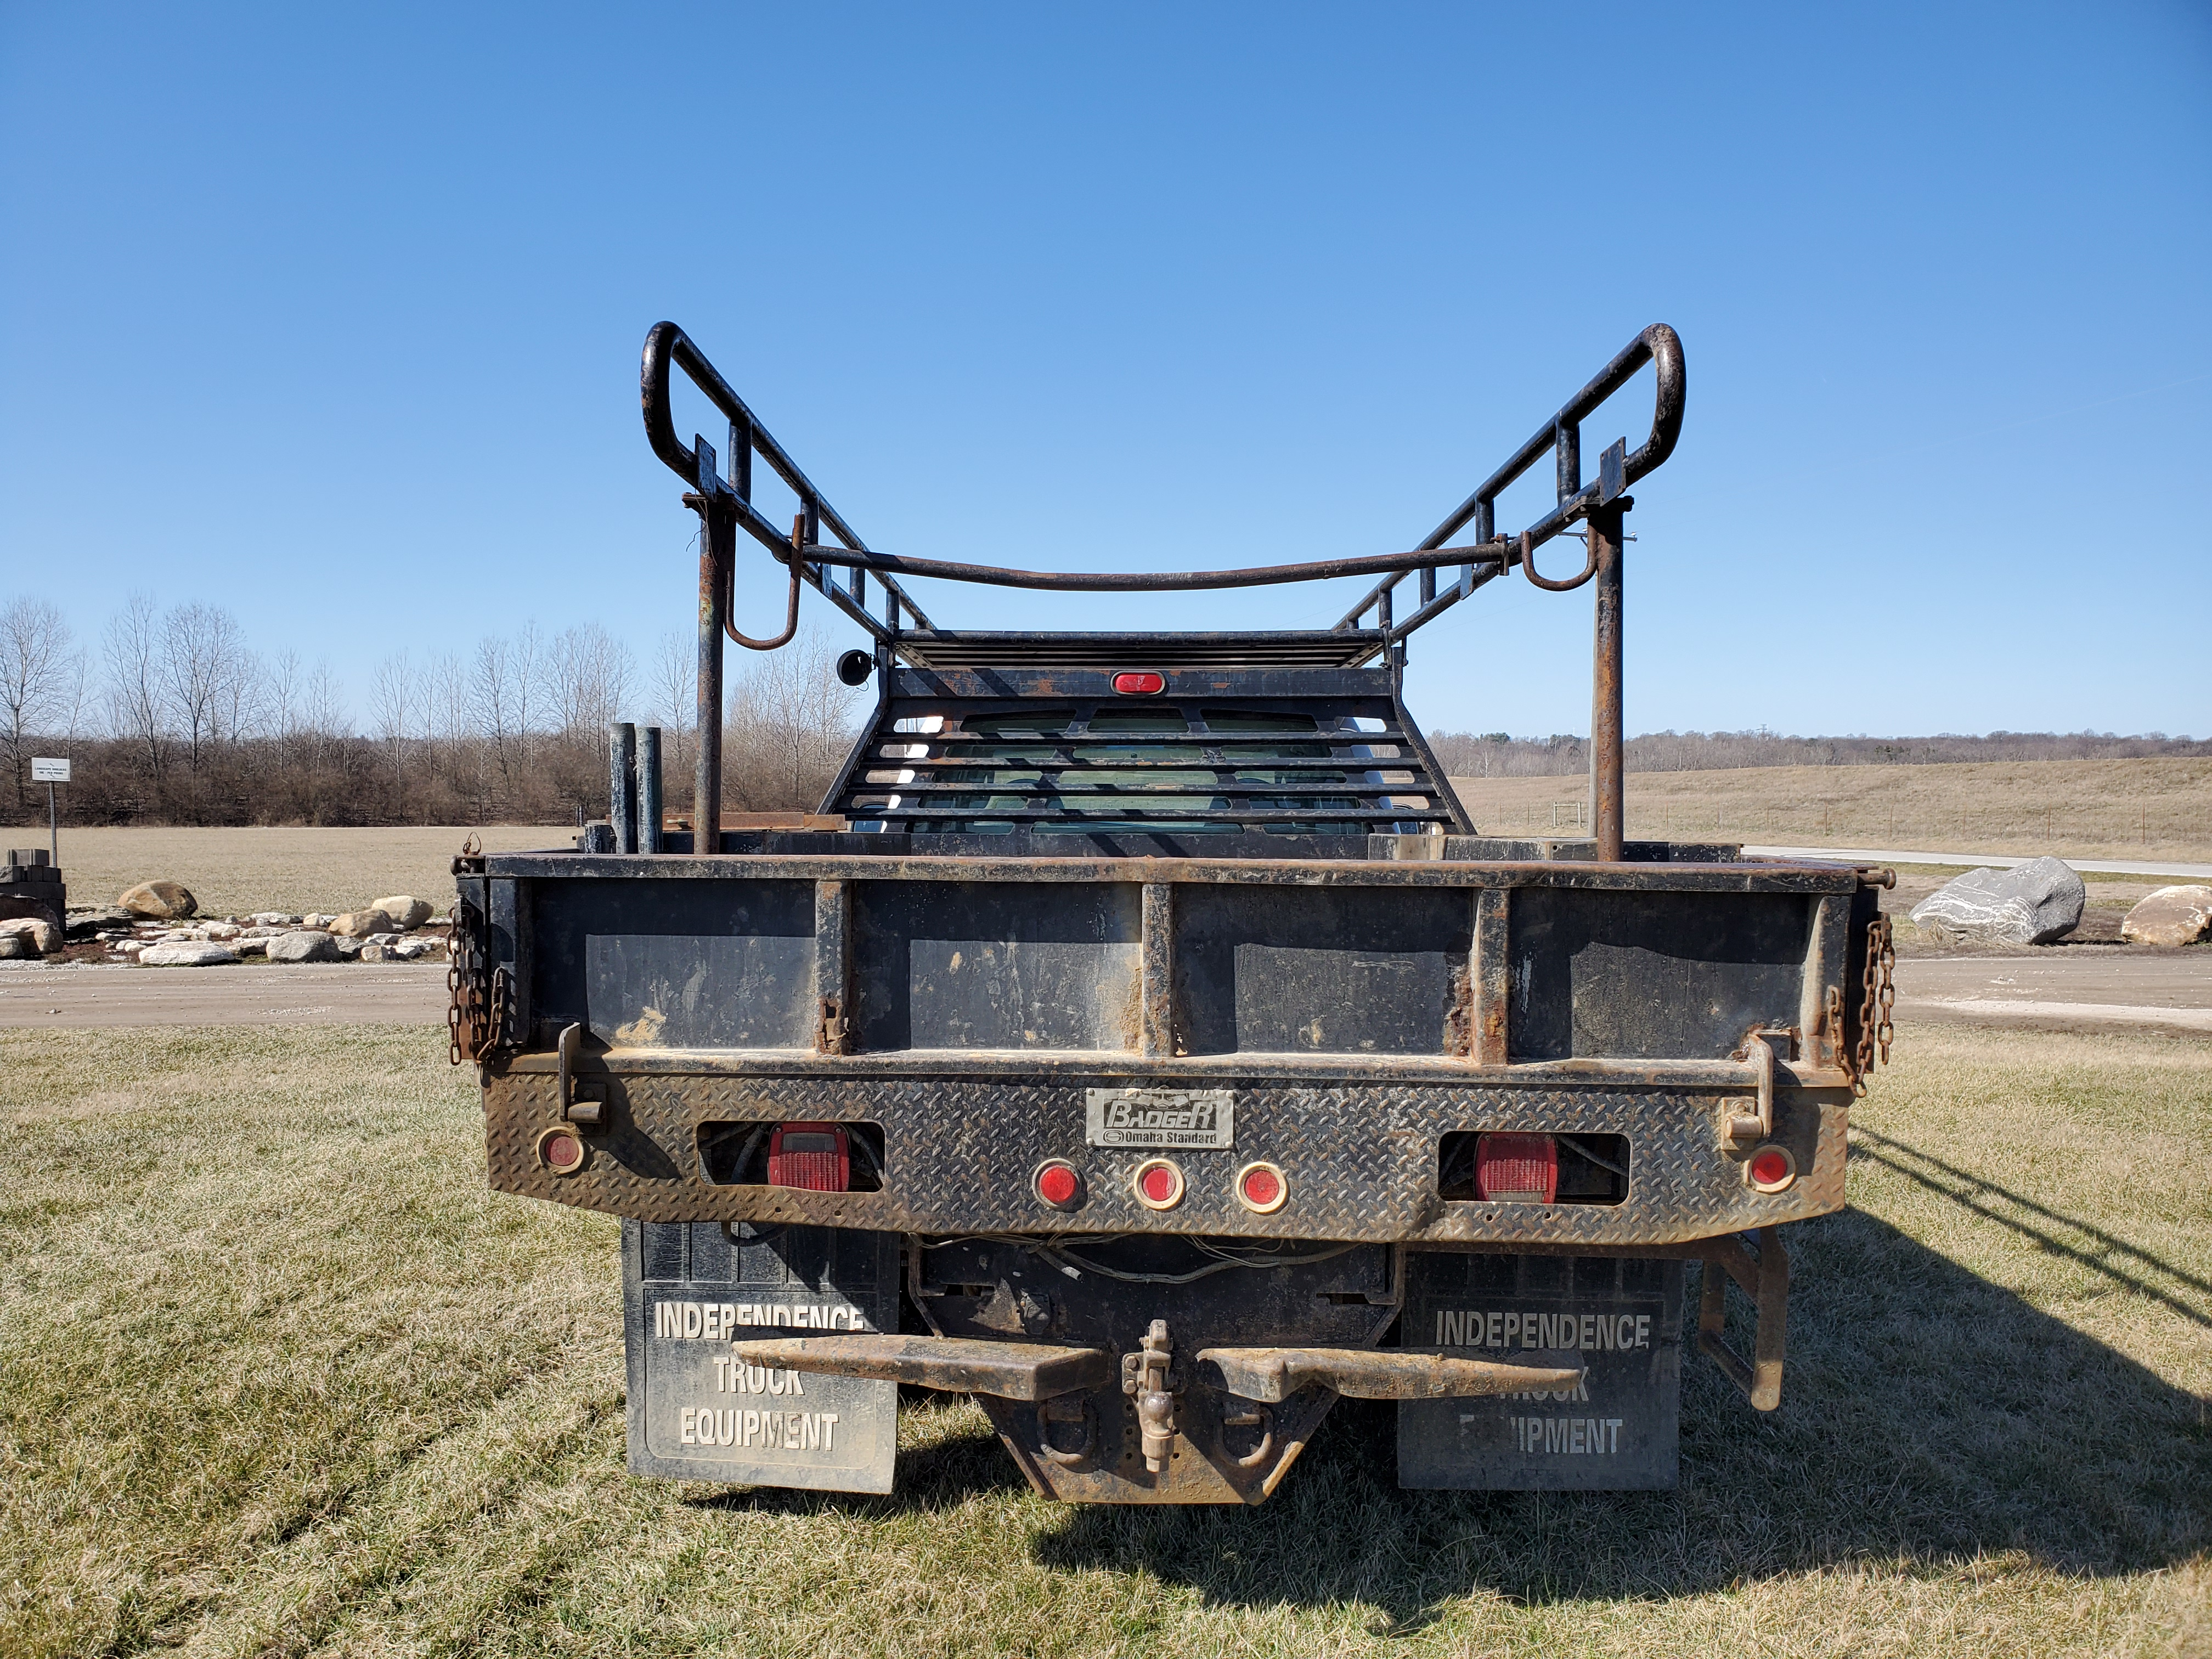 2003 F550 Ford Super Duty Pickup, Automatic, 7.3 Power Stroke Diesel, 8' Foot Omaha Flatbed - Image 8 of 18